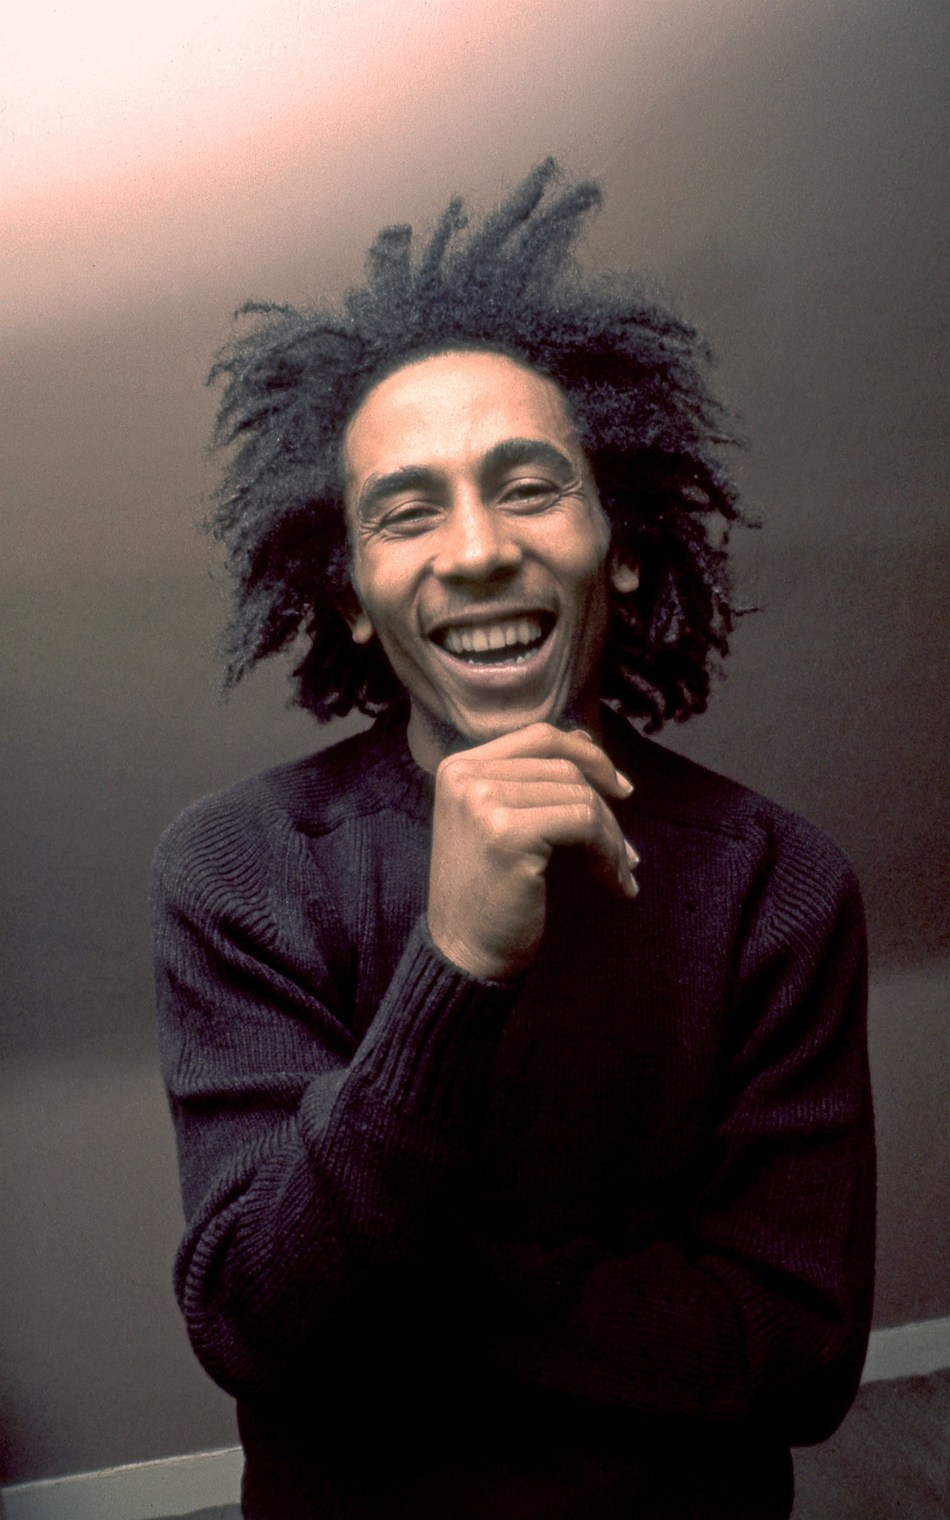 Bob Marley: Legacy; an 12-part mini-documentary series, featuring a collection of intimate conversations and interviews with his family, friends and fans, woven together with his original music, remixes and covers. This unique YouTube series provides fans a refreshing and cinematic journey through the life, legacy and relevance Bob Marley still holds in this present day. The first episode, '75 Years A Legend' debuts today, on Bob Marley's official YouTube page.